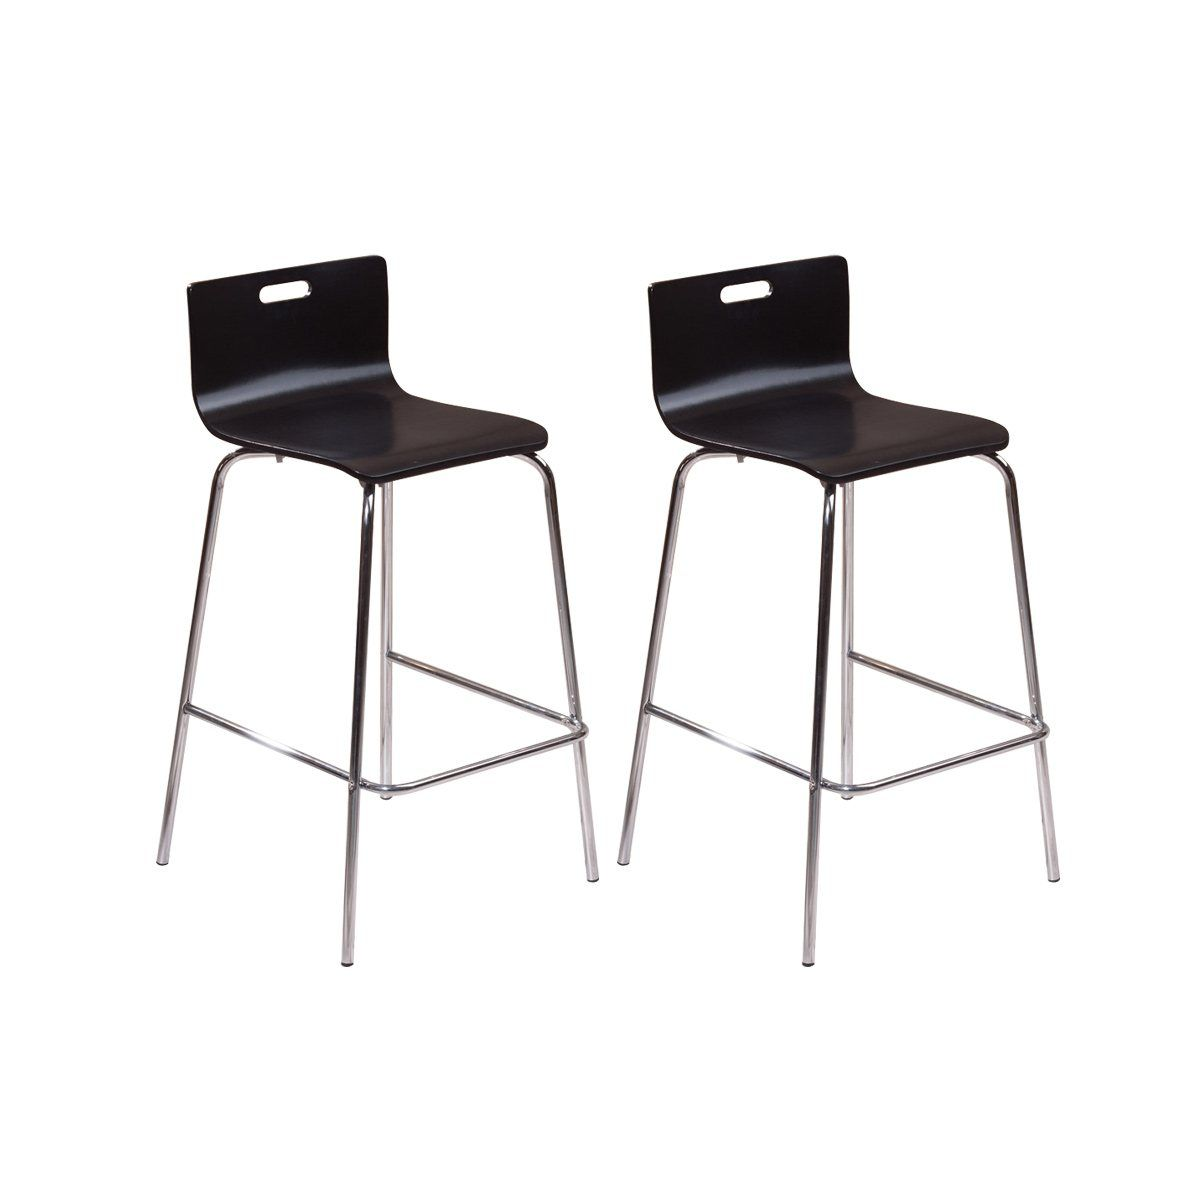 tabouret de bar la redoute tabouret de bar italien rendez vous deco with tabouret de bar la. Black Bedroom Furniture Sets. Home Design Ideas